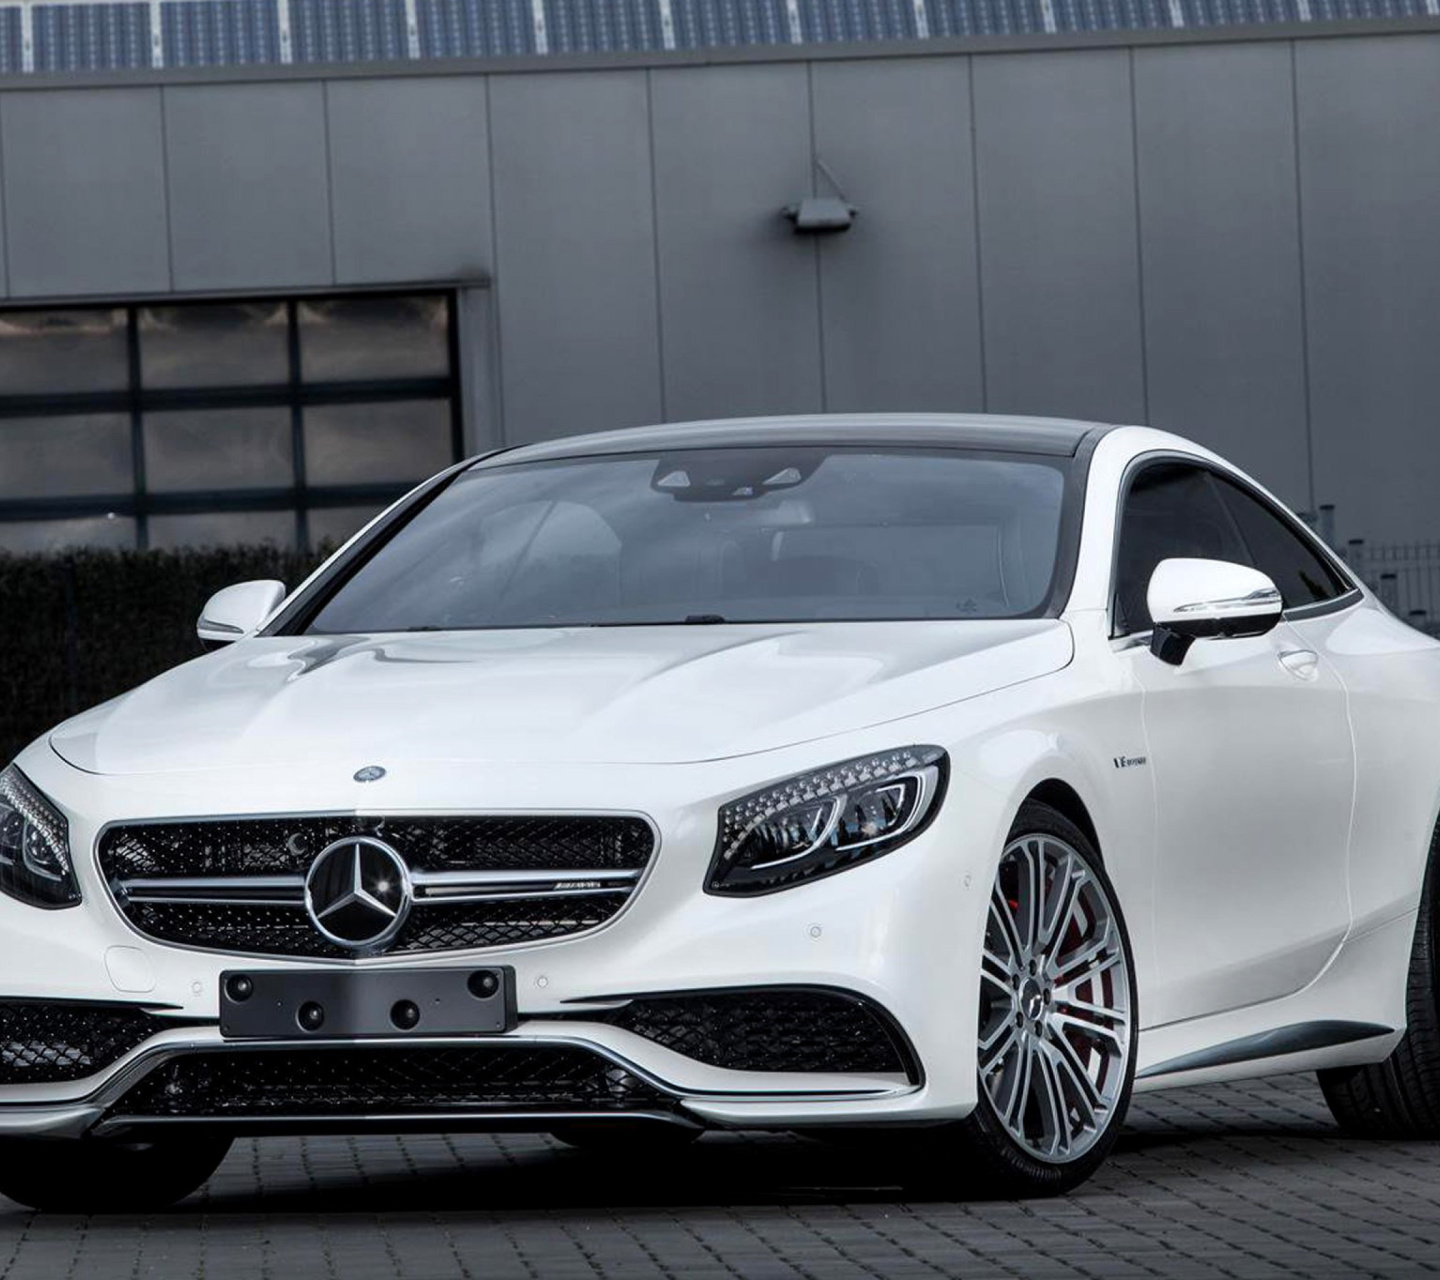 Download Wallpapers Mercedes Benz S63 Amg 2018 White: Mercedes-Benz S63 AMG Wallpaper For Samsung Galaxy A5